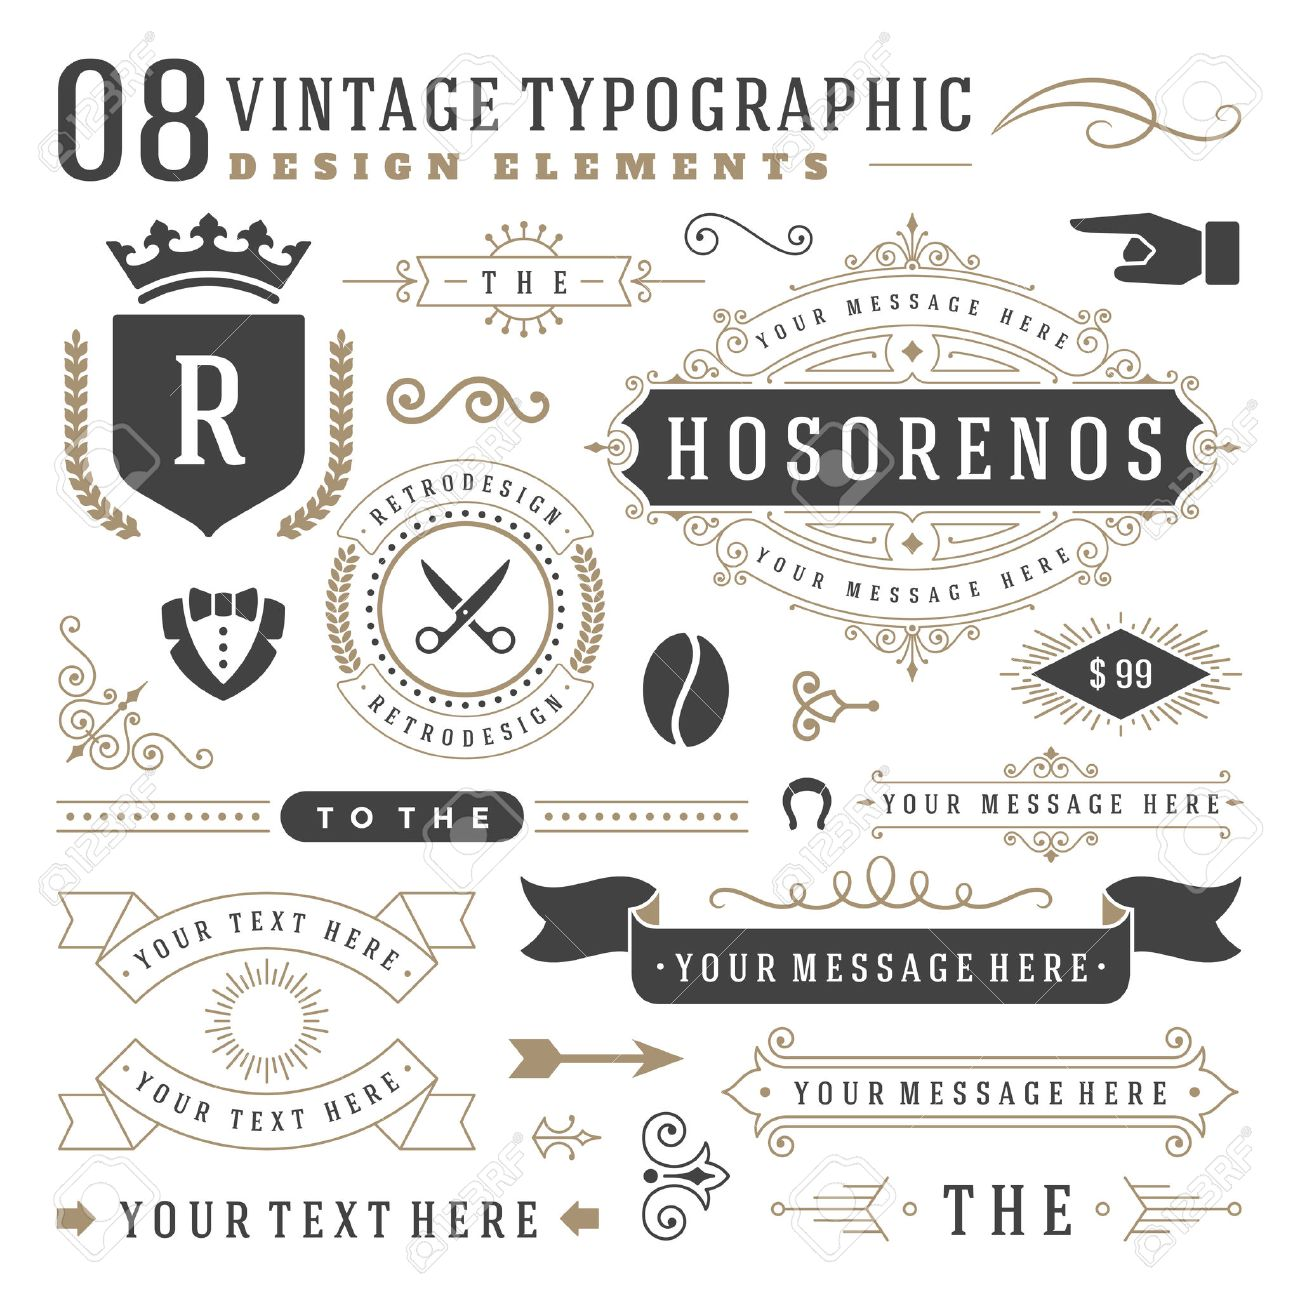 Retro Vintage insignias set. Vector design elements, business signs, identity, labels, badges, ribbons, stickers and other branding objects. - 47936596